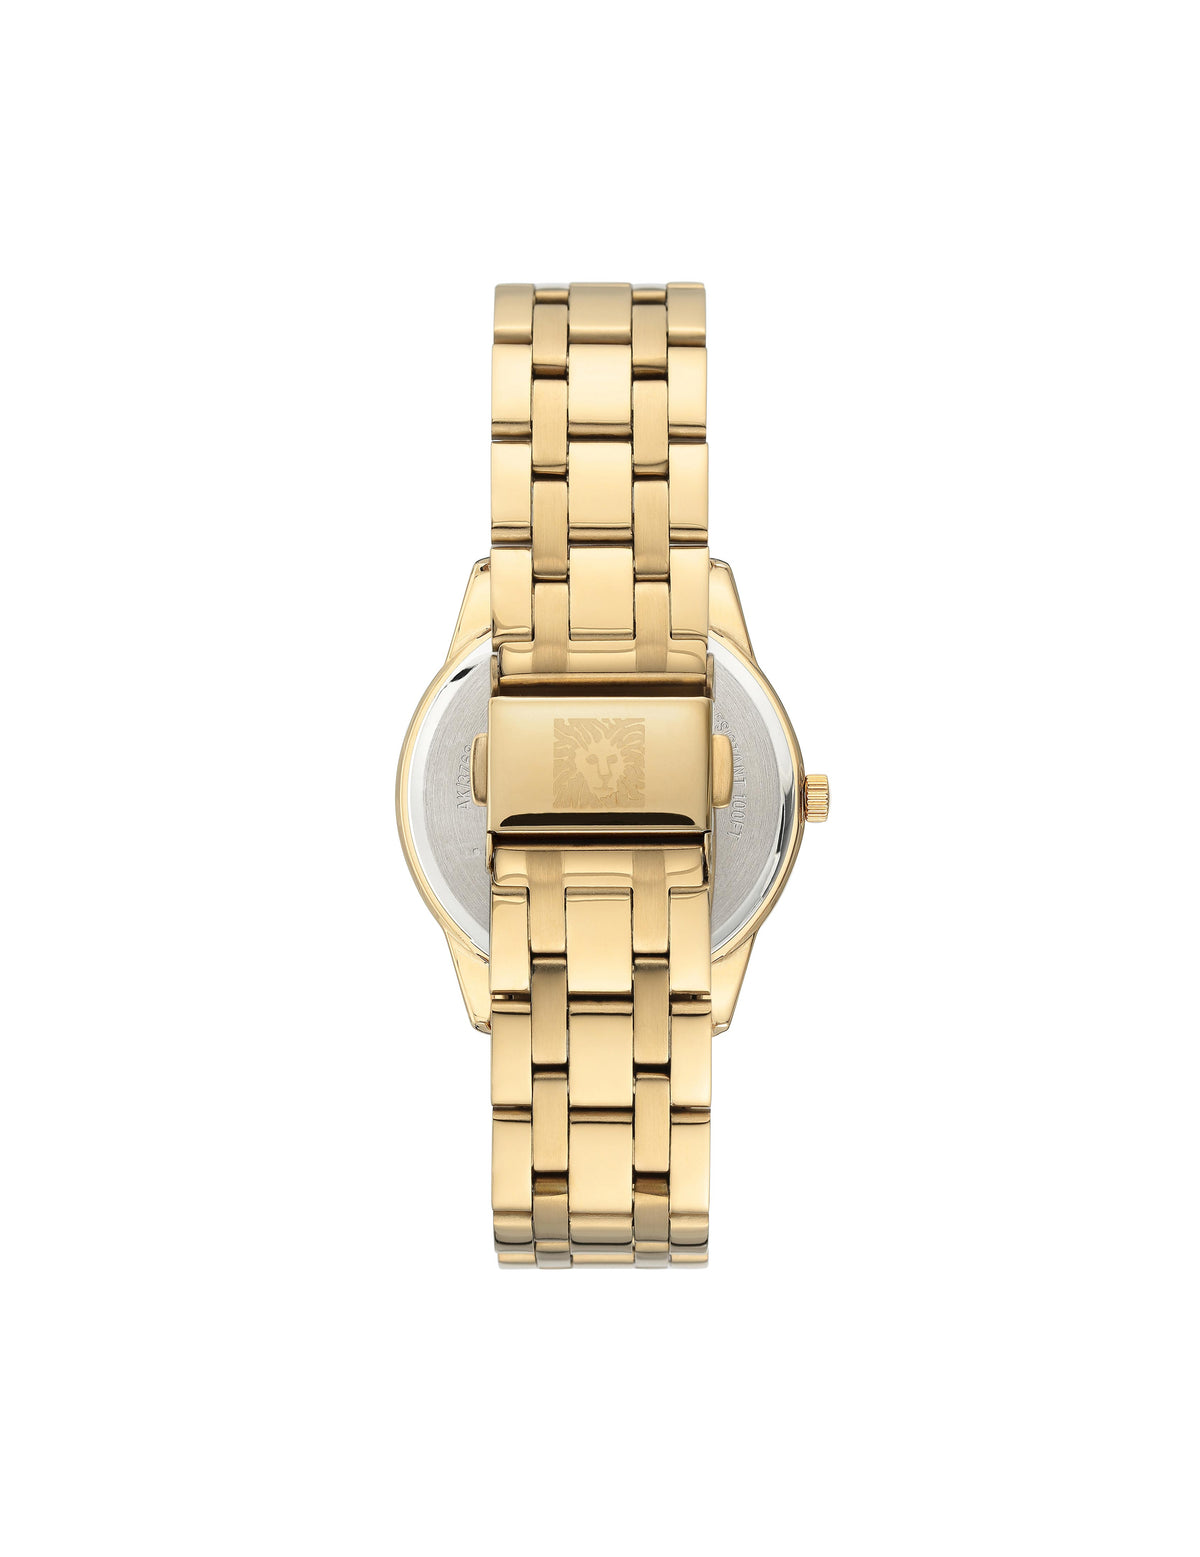 Considered Solar Powered Bracelet Watch